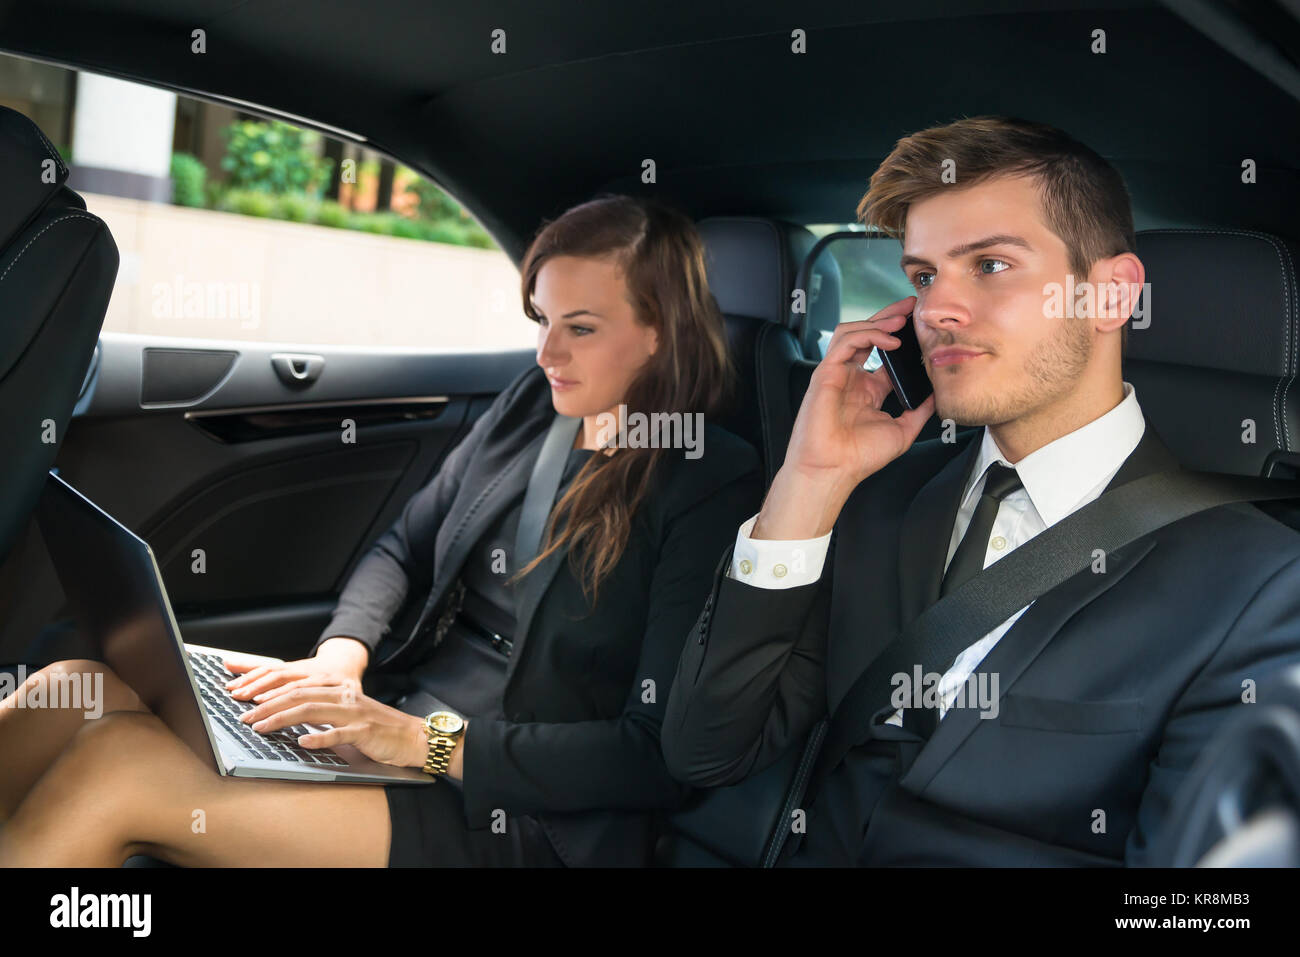 Businessman And Businesswoman In The Car - Stock Image